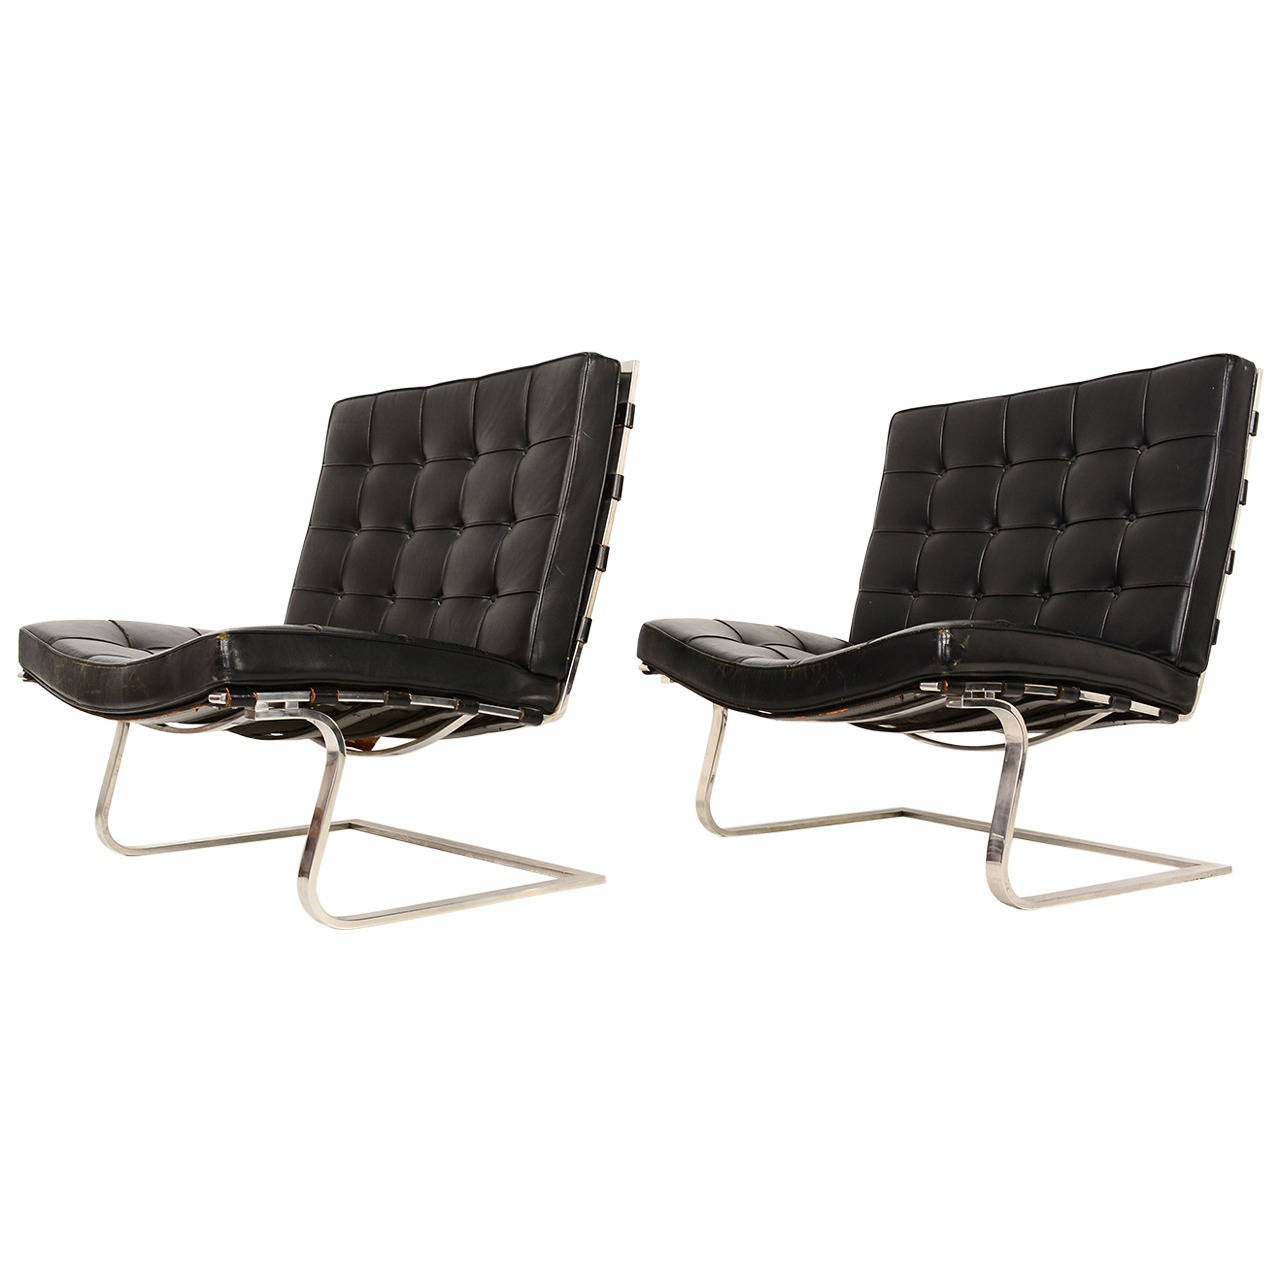 mies van der rohe tugendhat lounge chairs for knoll for sale at 1stdibs. Black Bedroom Furniture Sets. Home Design Ideas